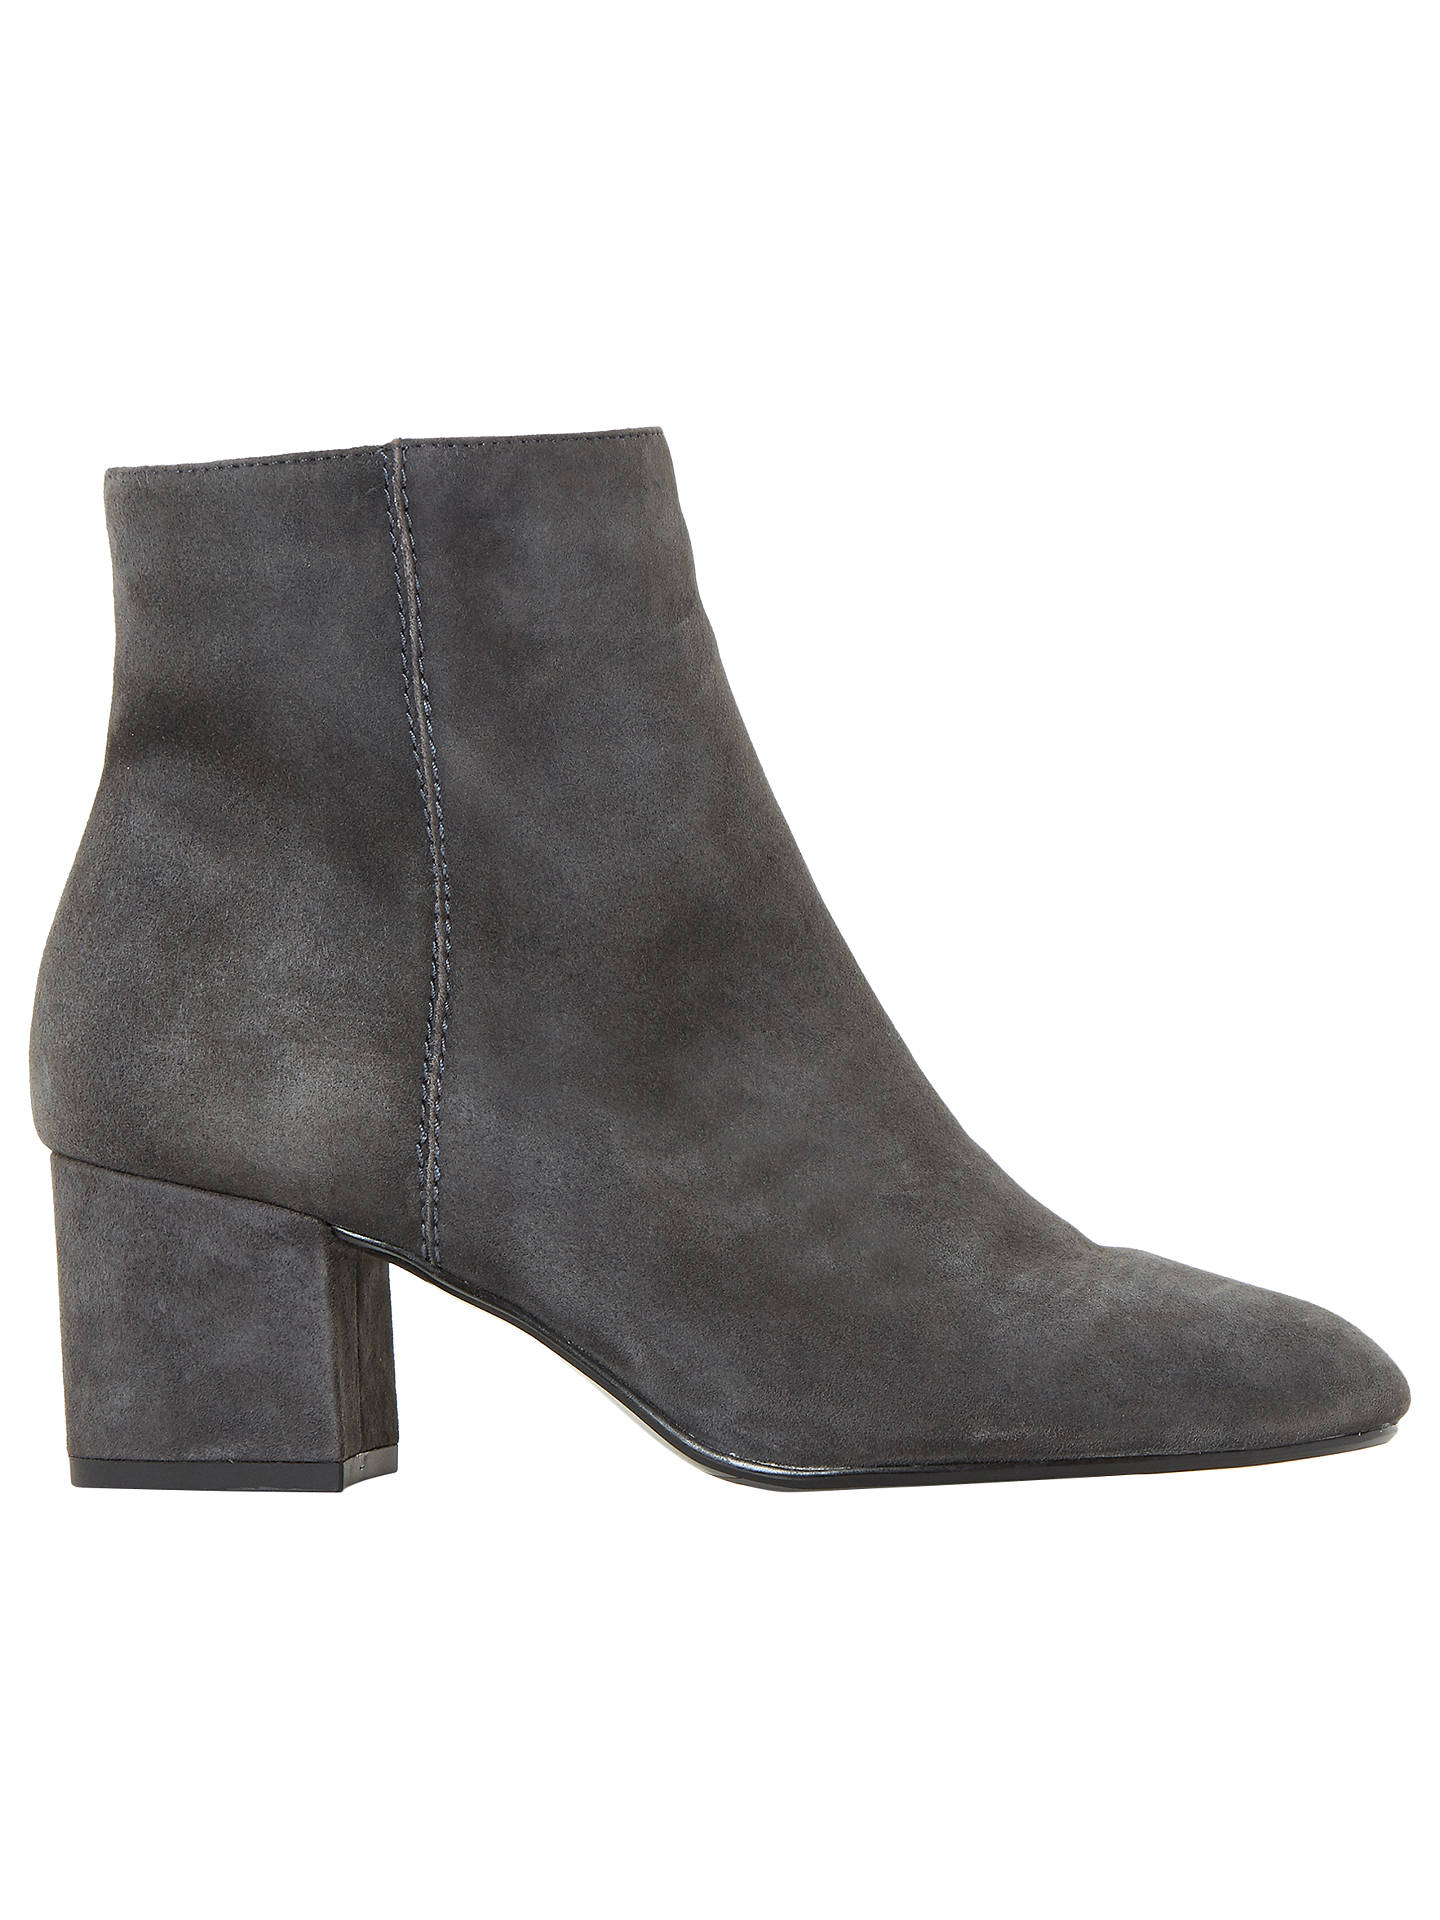 8c1e7dfc322 Dune Olyvea Block Heeled Ankle Boots, Grey Suede at John Lewis ...